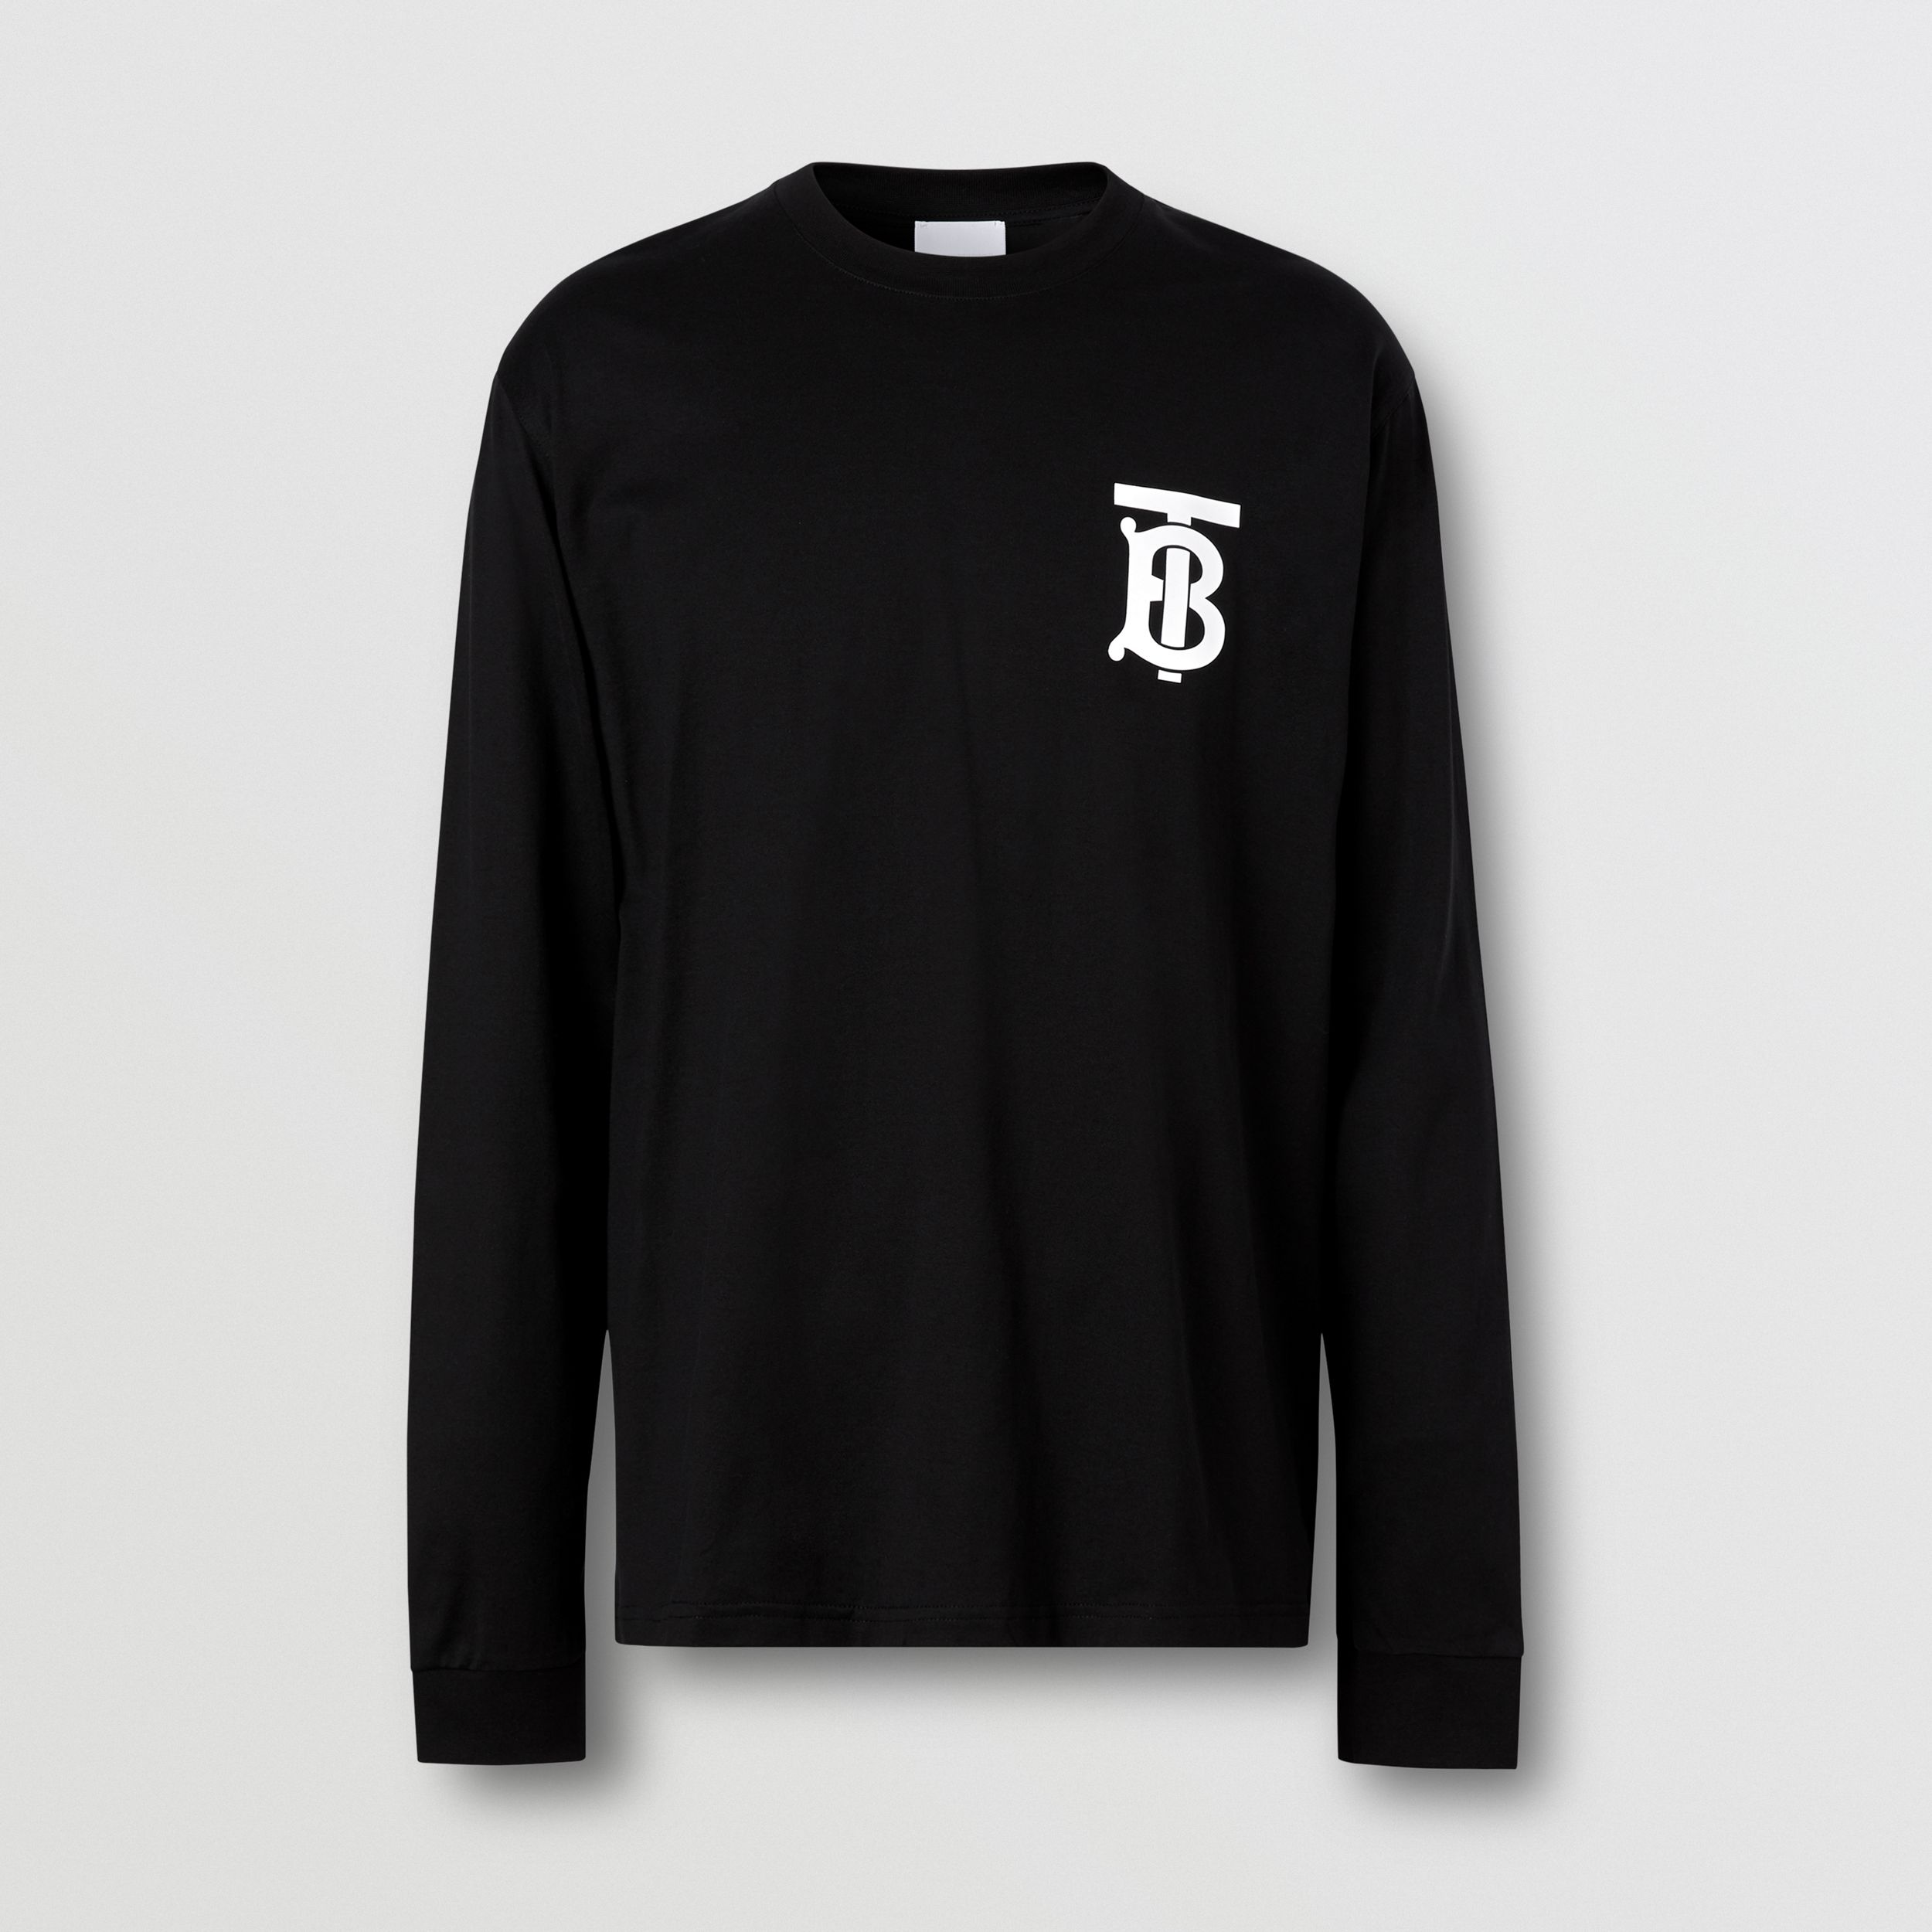 Long-sleeve Monogram Motif Cotton Top in Black - Men | Burberry - 4